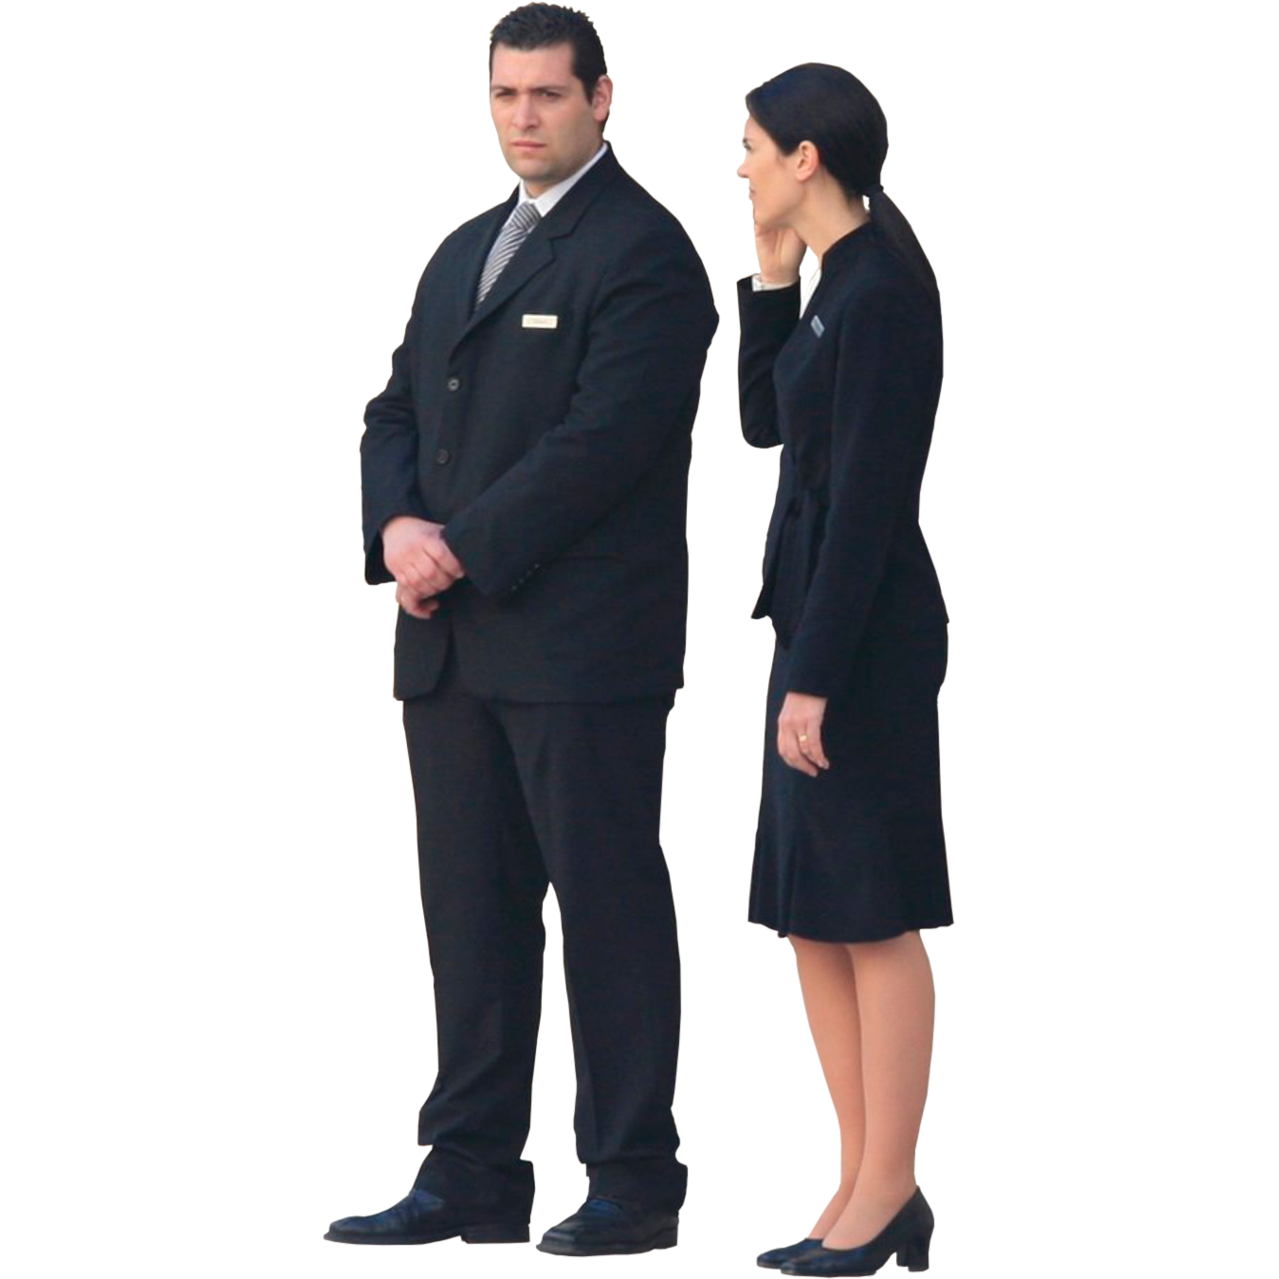 Business People Photos PNG Image